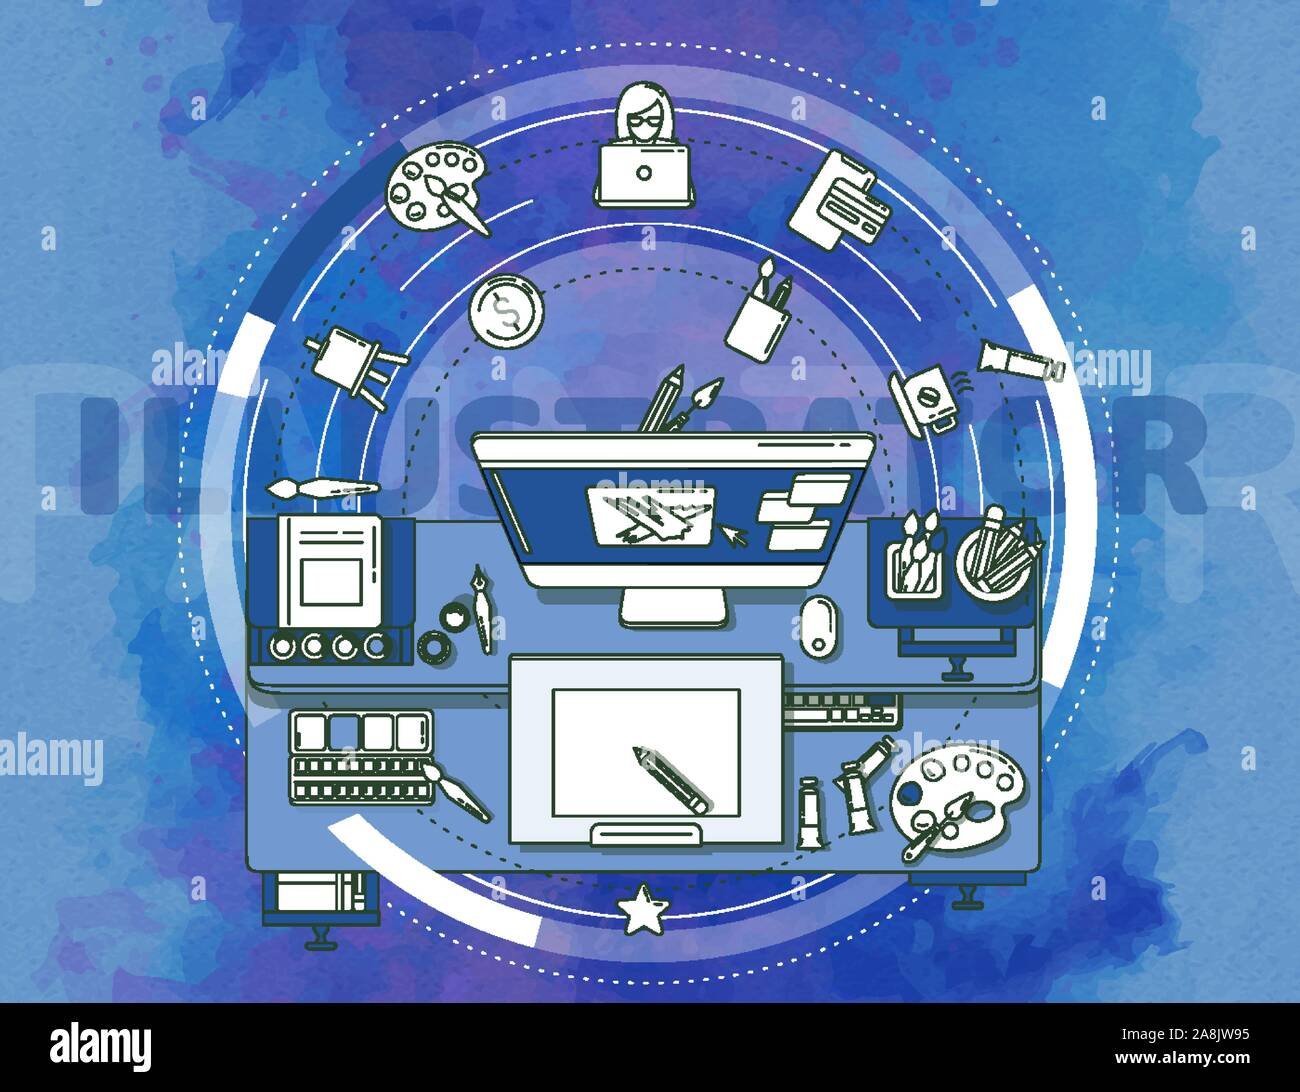 https://c8.alamy.com/comp/2A8JW95/modern-complex-and-dynamic-illustration-use-it-to-create-a-promotional-presentation-or-poster-to-advertise-your-services-2A8JW95.jpg